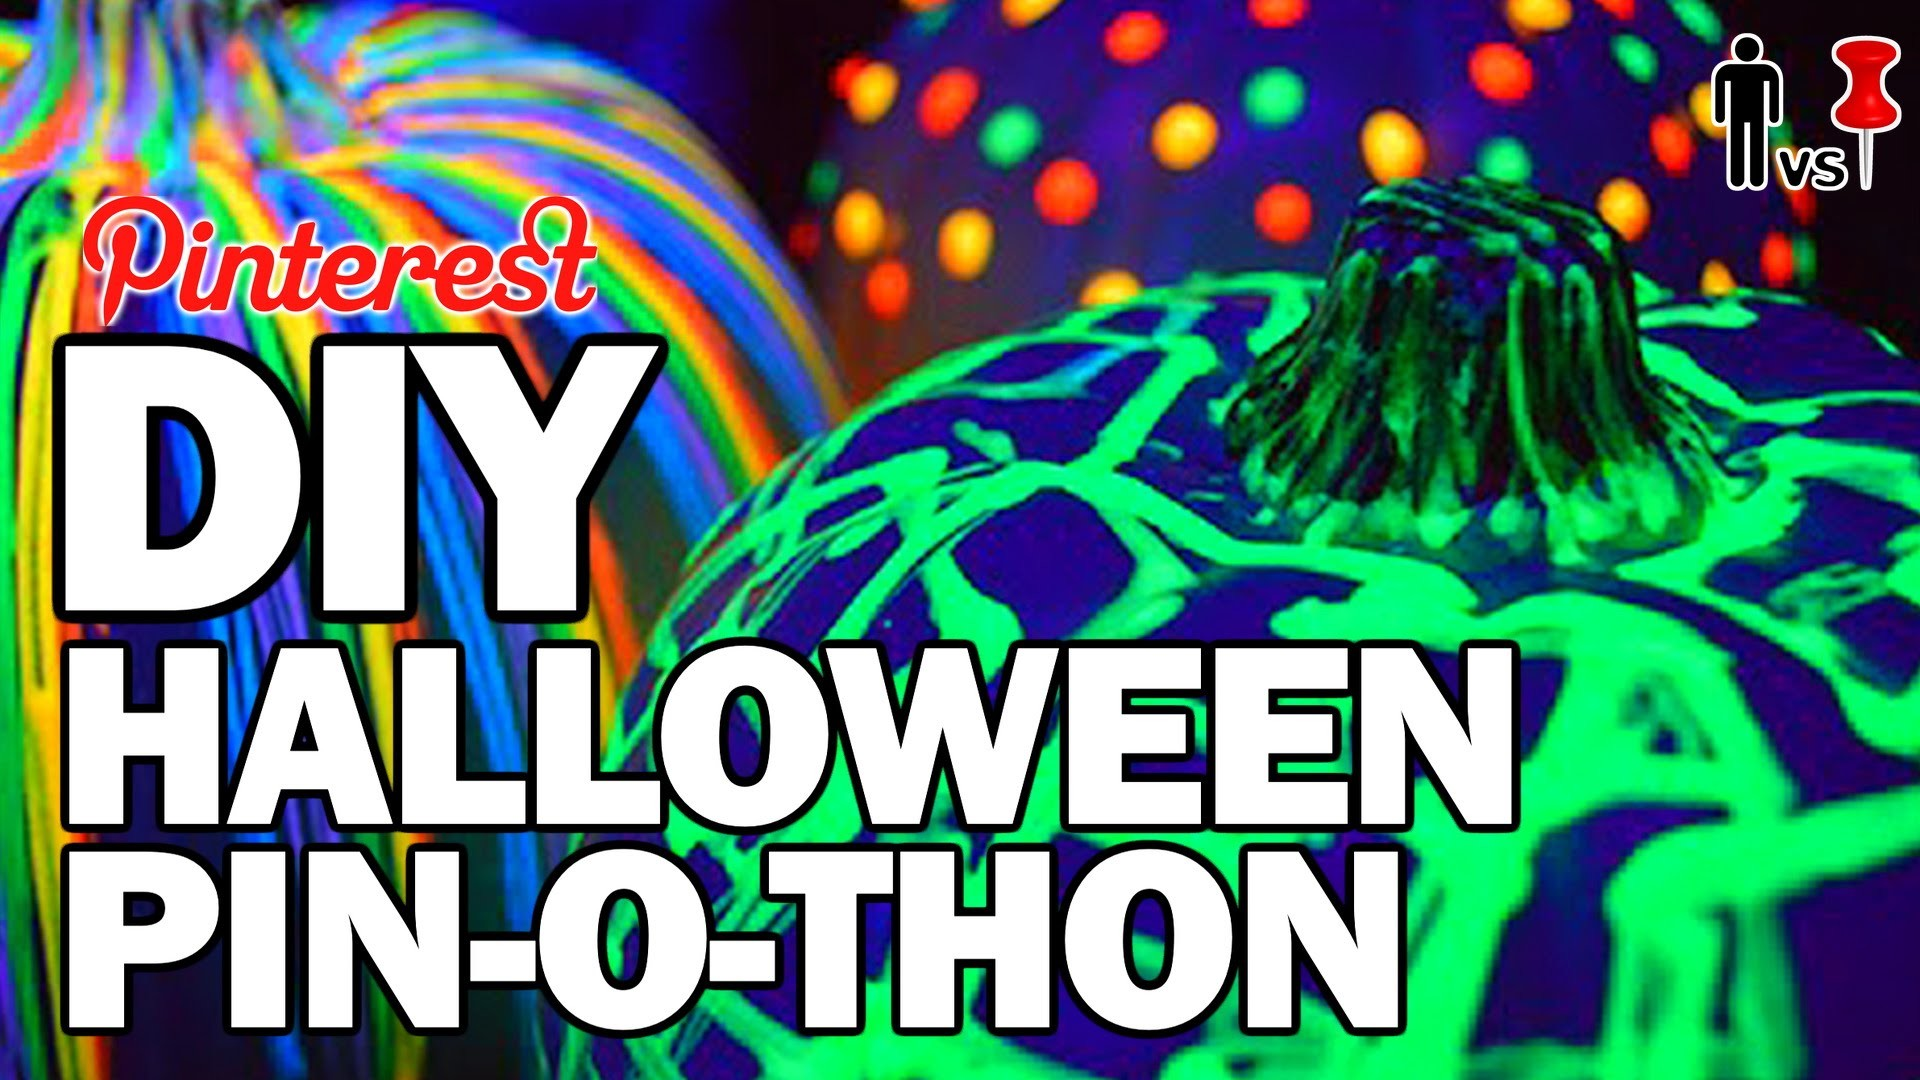 DIY Halloween PIN-O-THON - Man Vs Pin - Pinterest Test #70